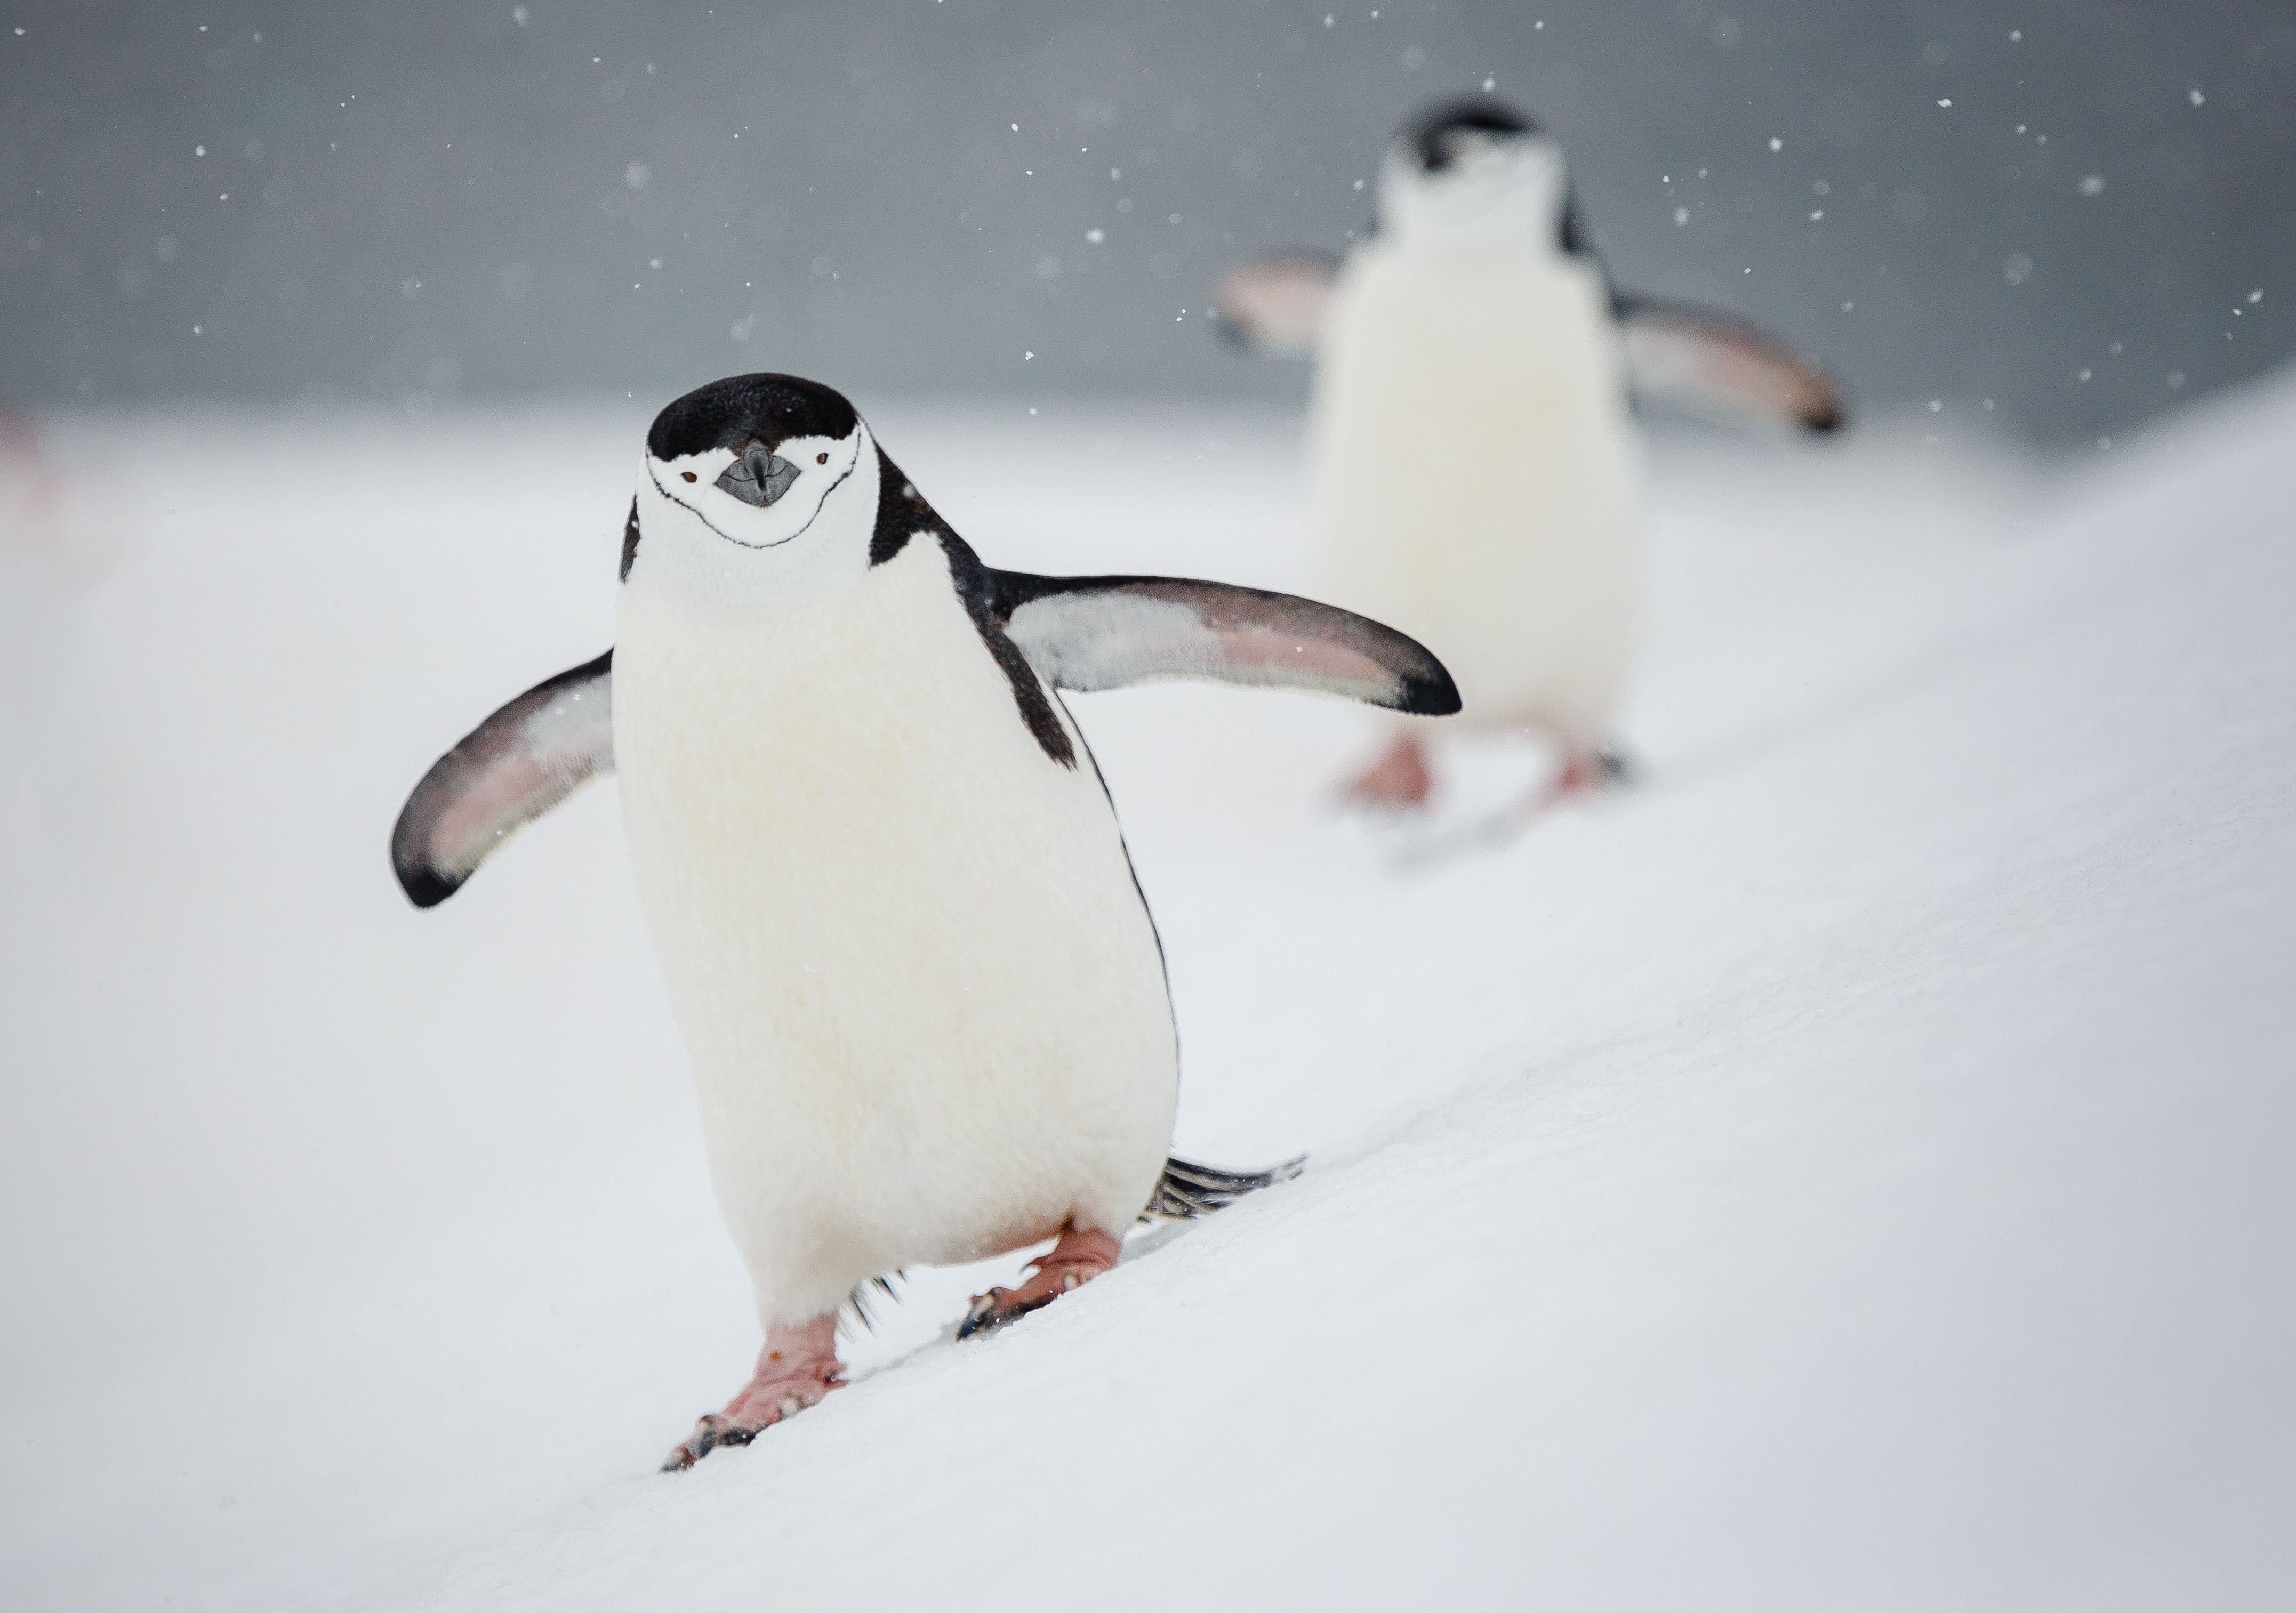 Chinstrap penguins toddle along an incline, delighting Quark passengers in Antarctica